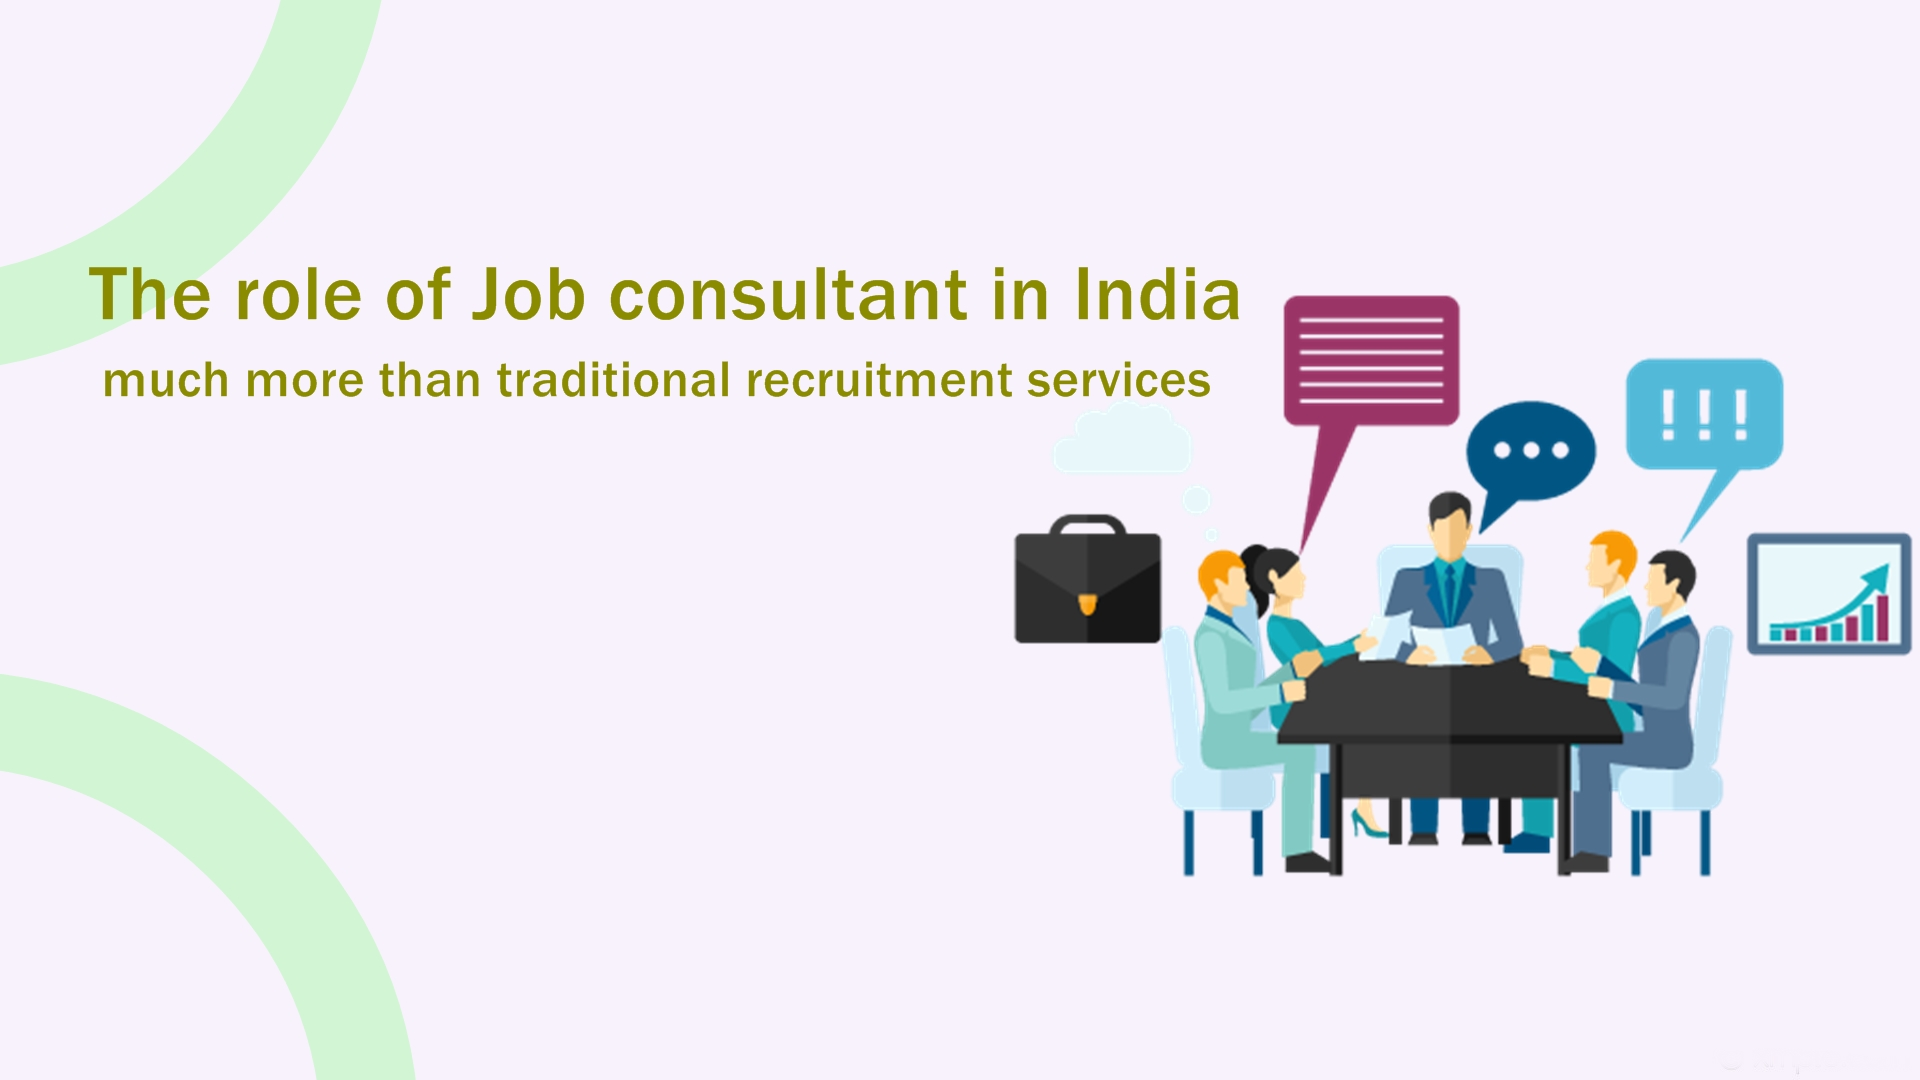 The role of Job consultant in India much more than traditional recruitment services.